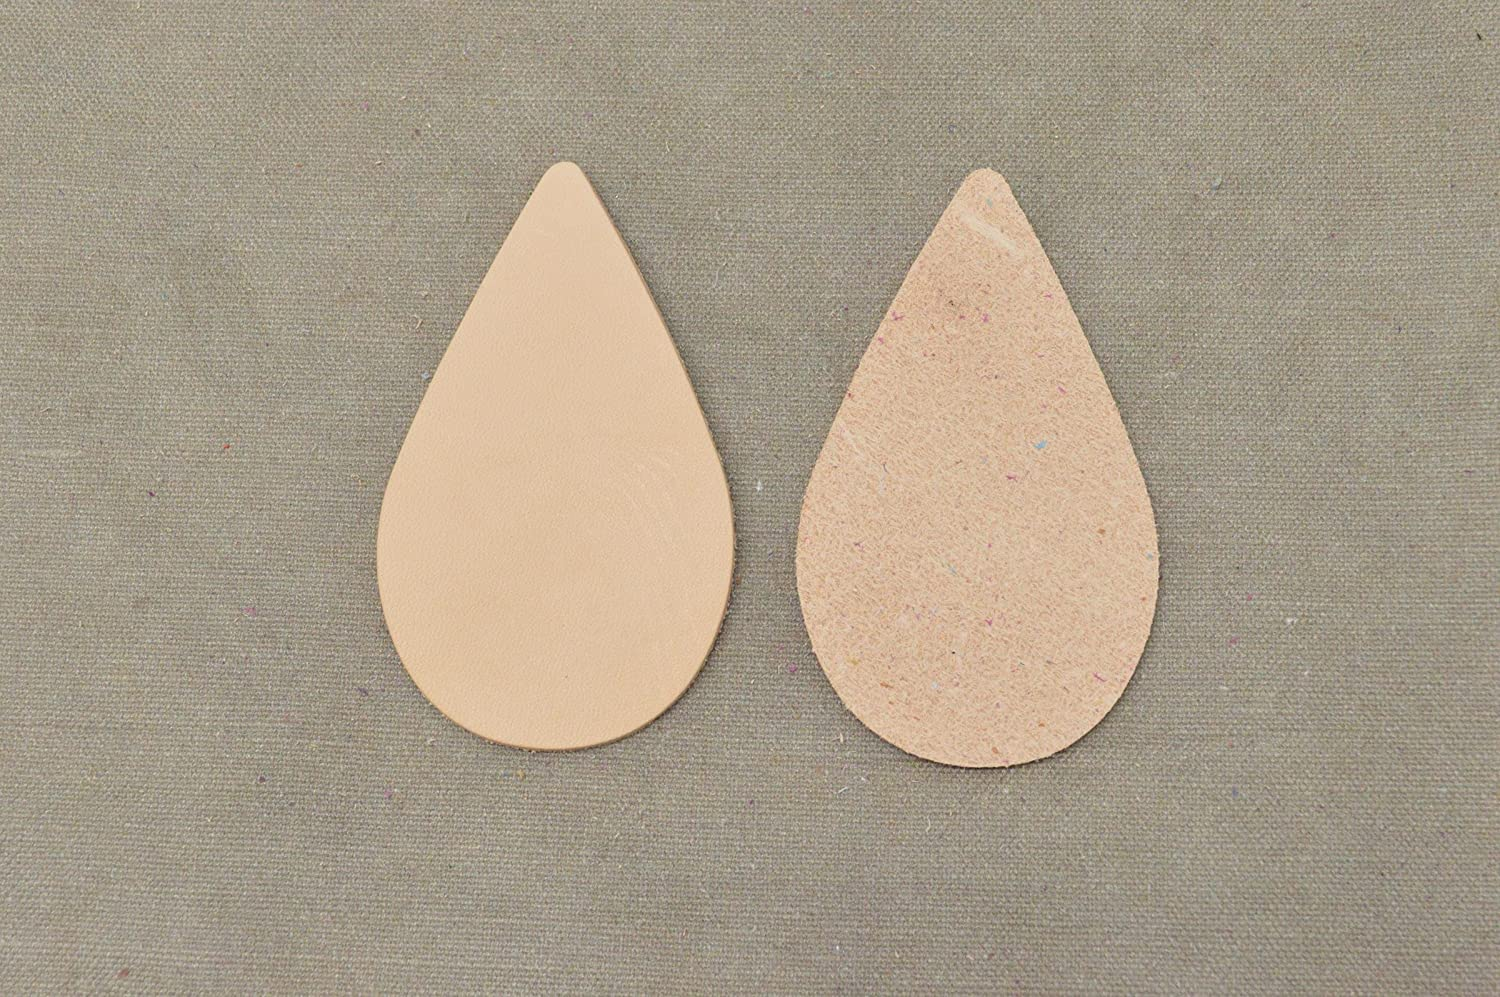 Small Circle The Leather Guy Leather Die Cut Earrings Veg Tan 5-6 oz Artisans Choice